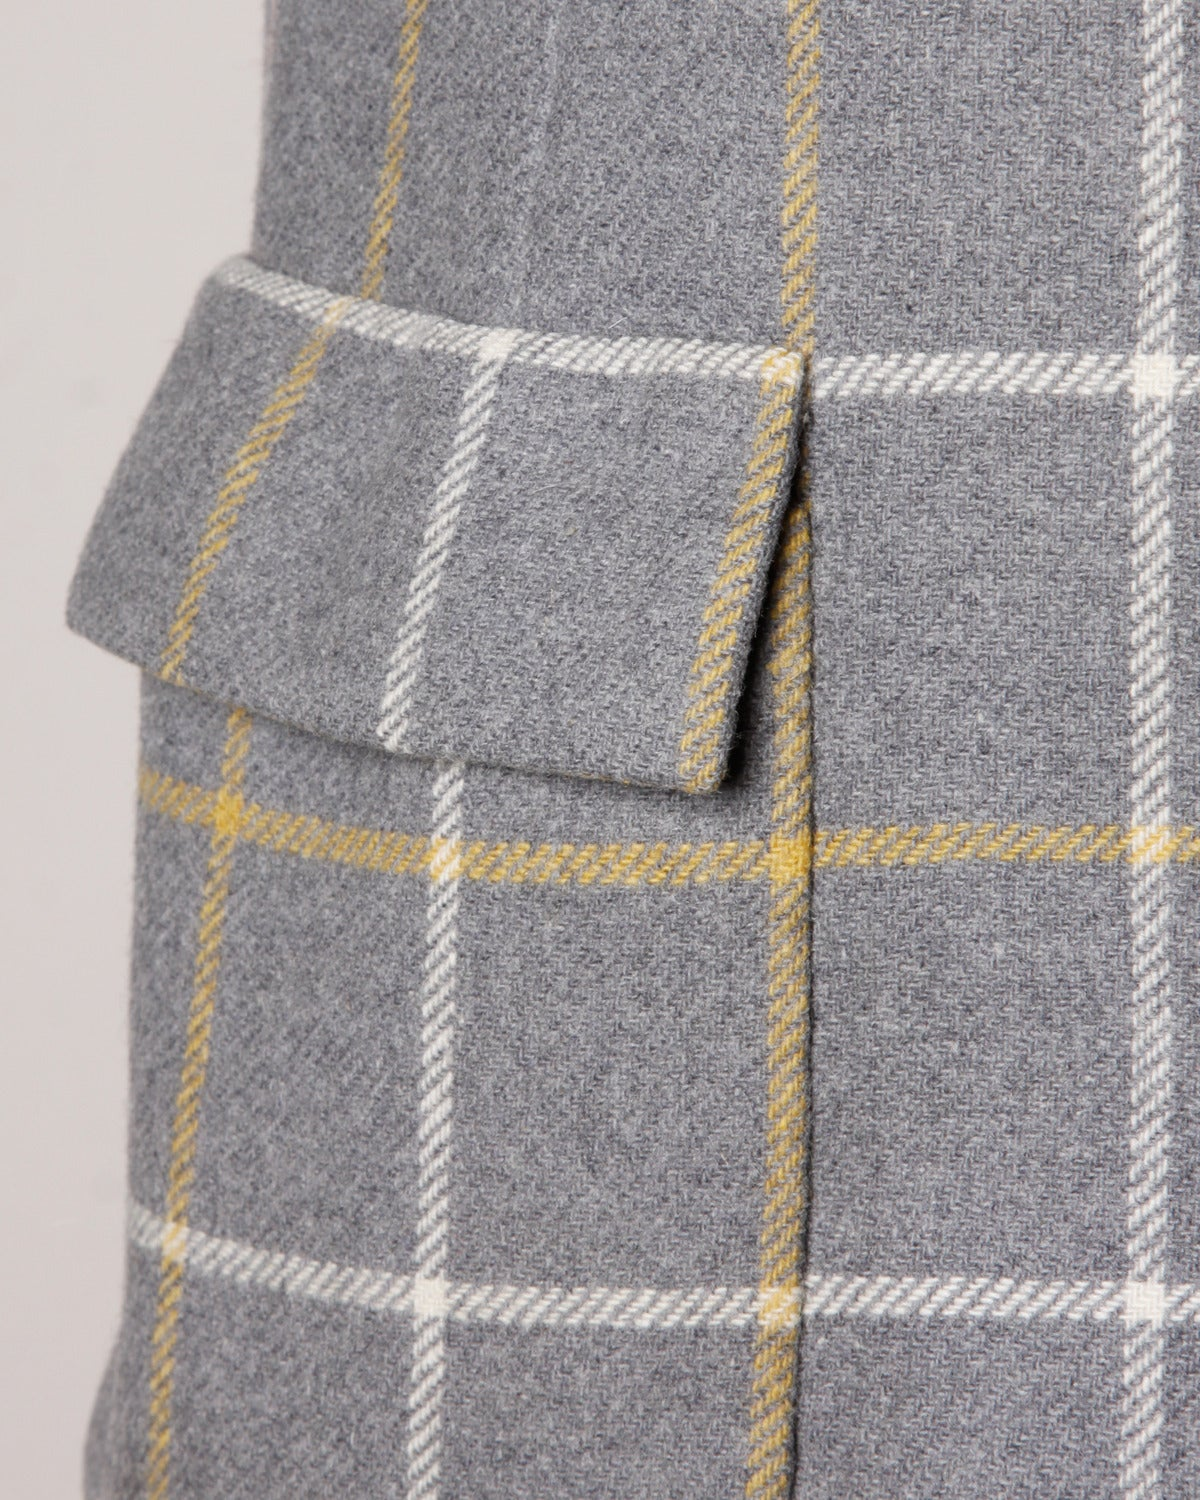 Christian Dior Vintage 1960s Wool Plaid Tailored Jacket In Excellent Condition For Sale In Sparks, NV